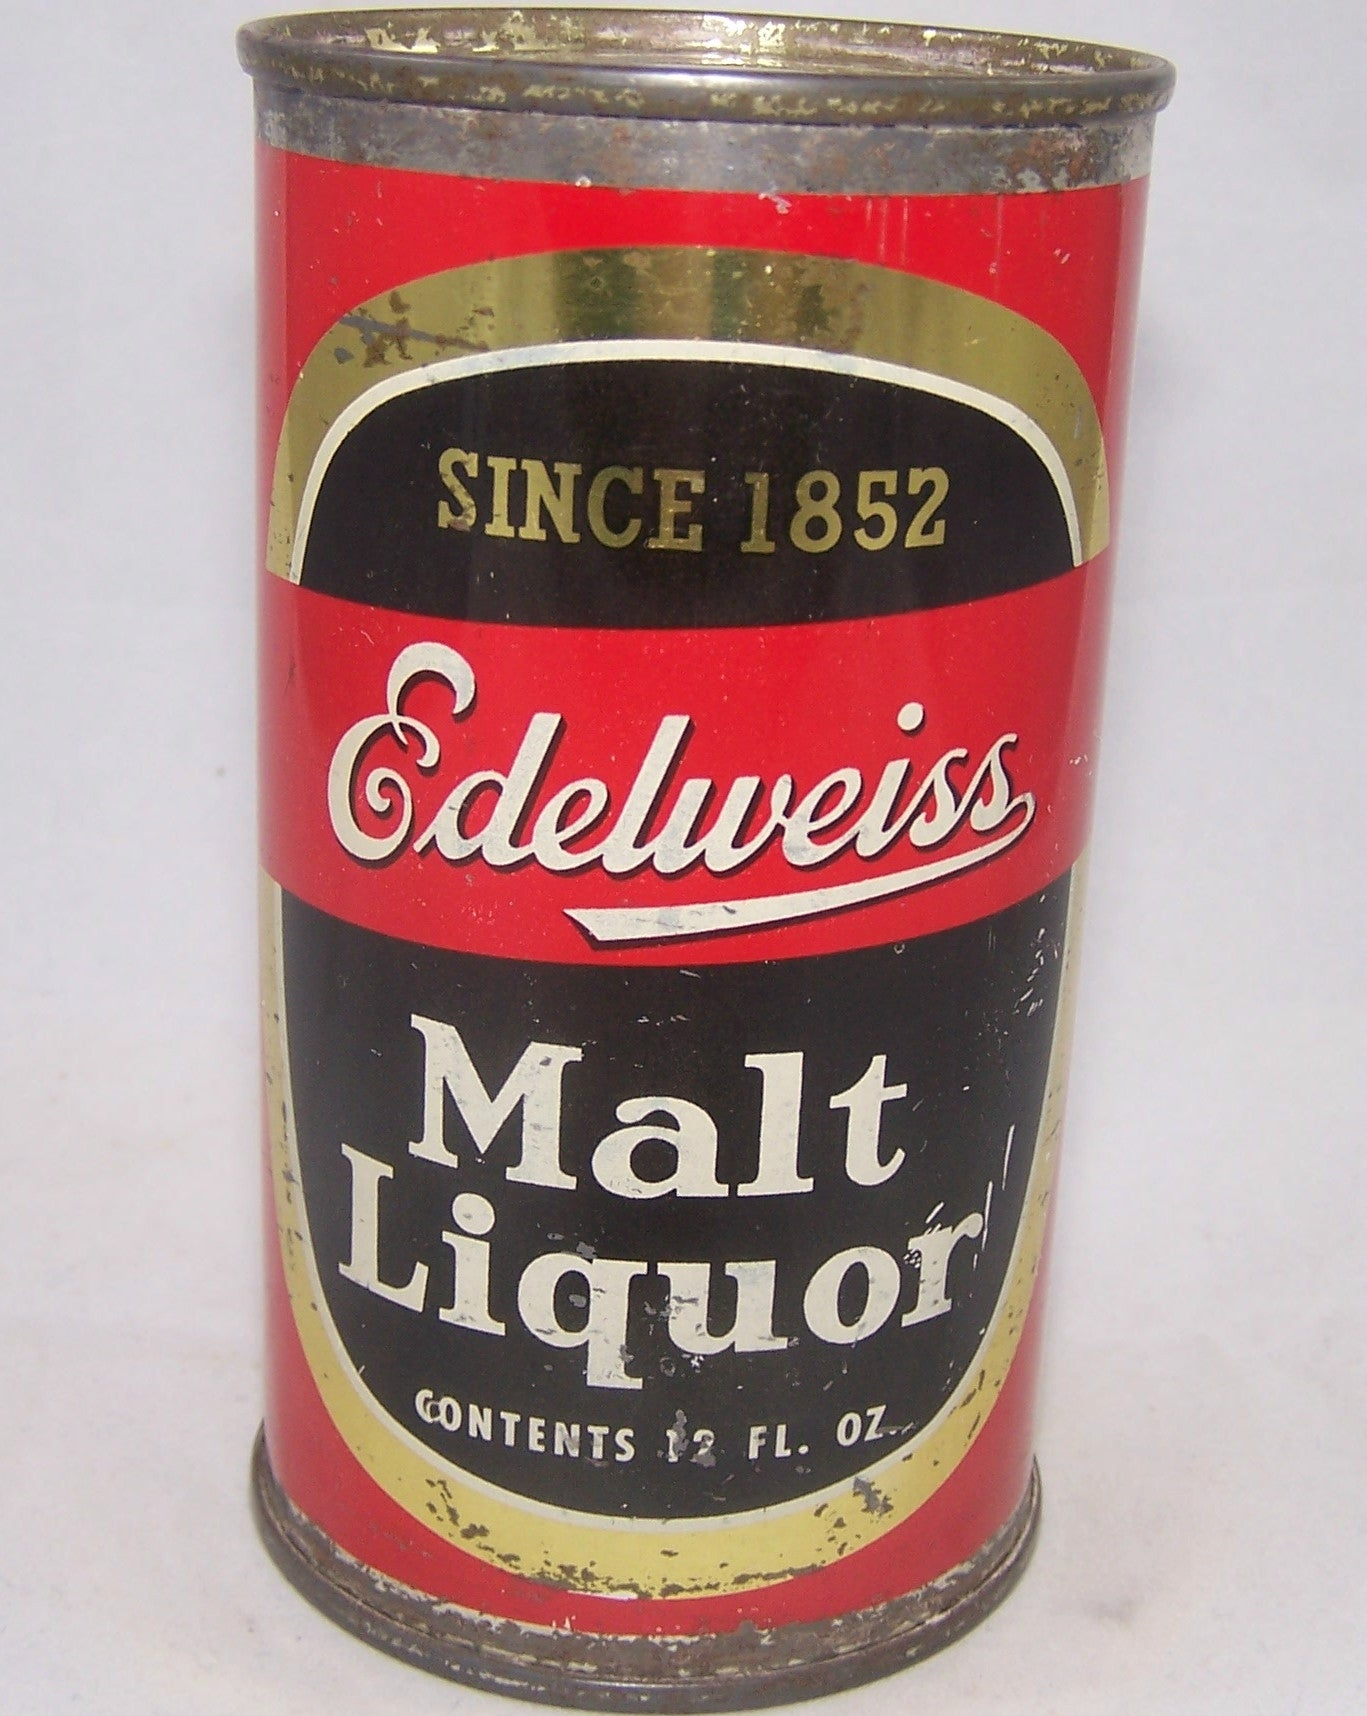 Edelweiss Malt Liquor, USBC 59-09, Grade 1- Sold on 11/03/17